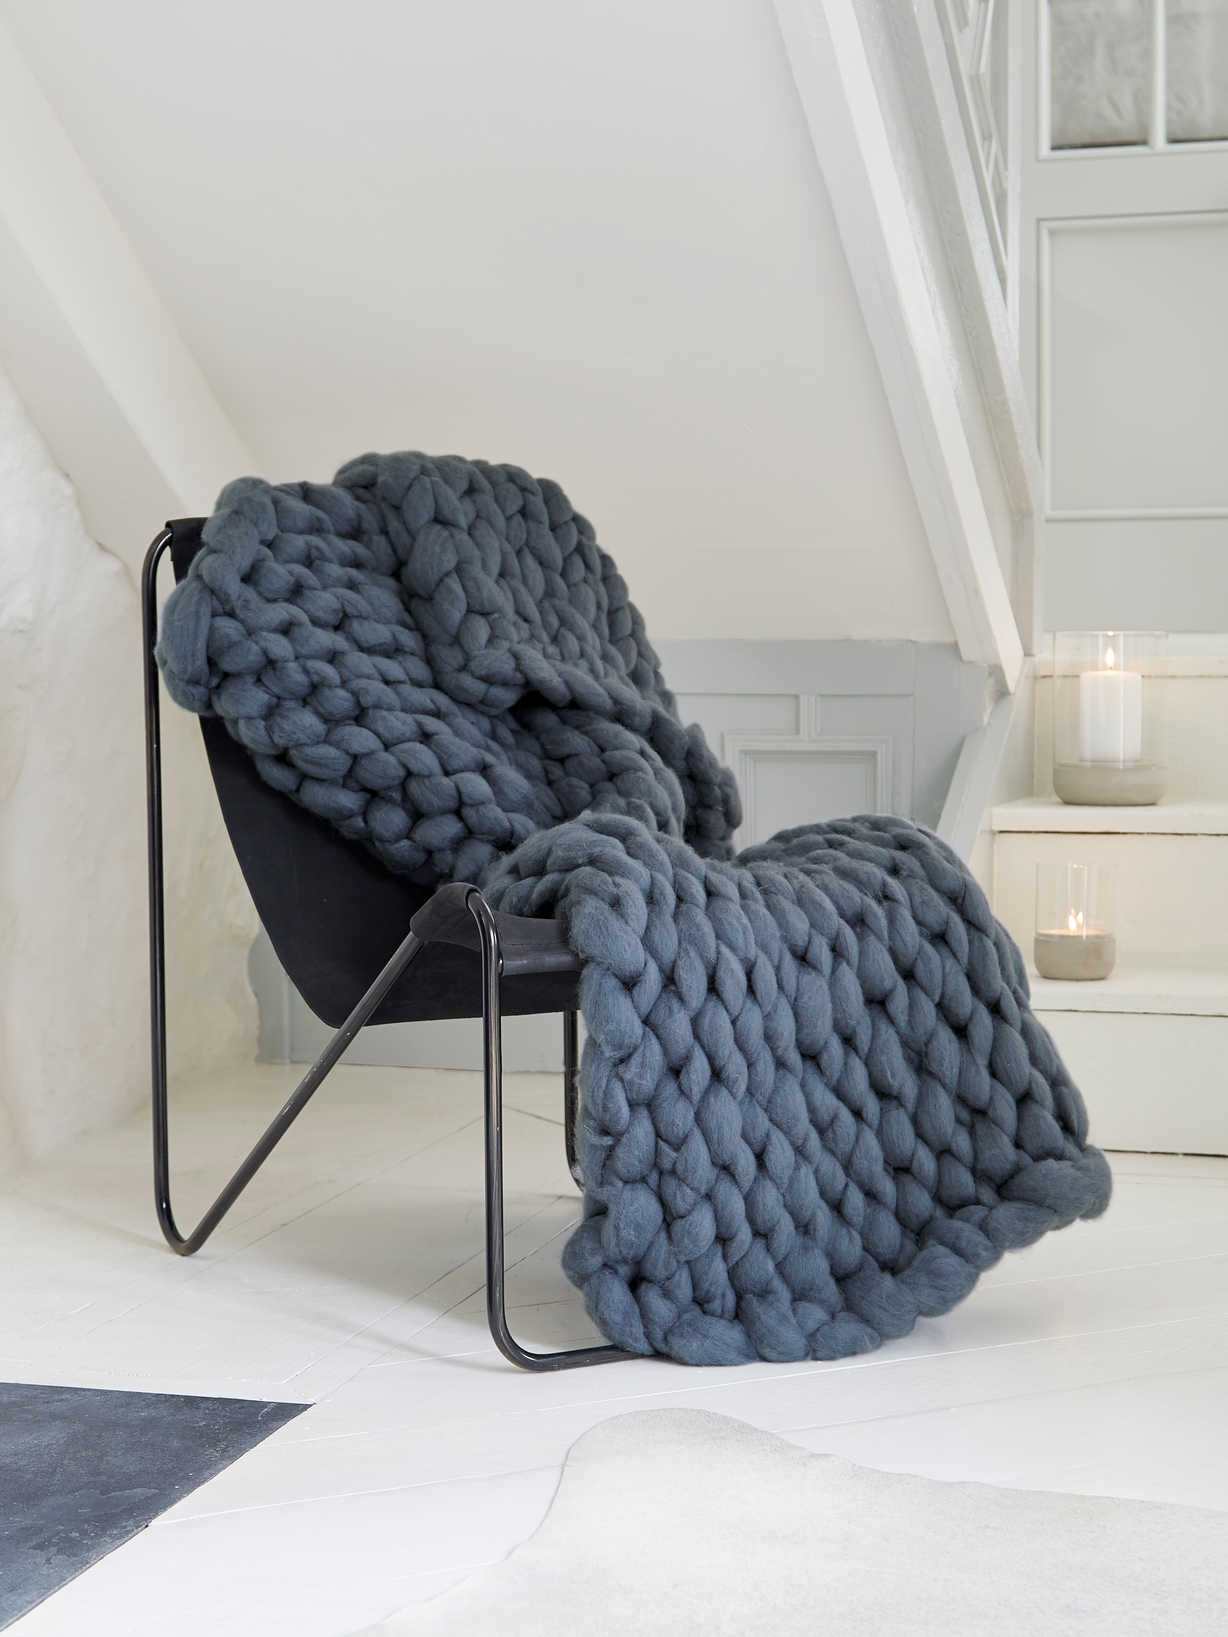 Nordic House Super Chunky Knit Blanket - Graphite